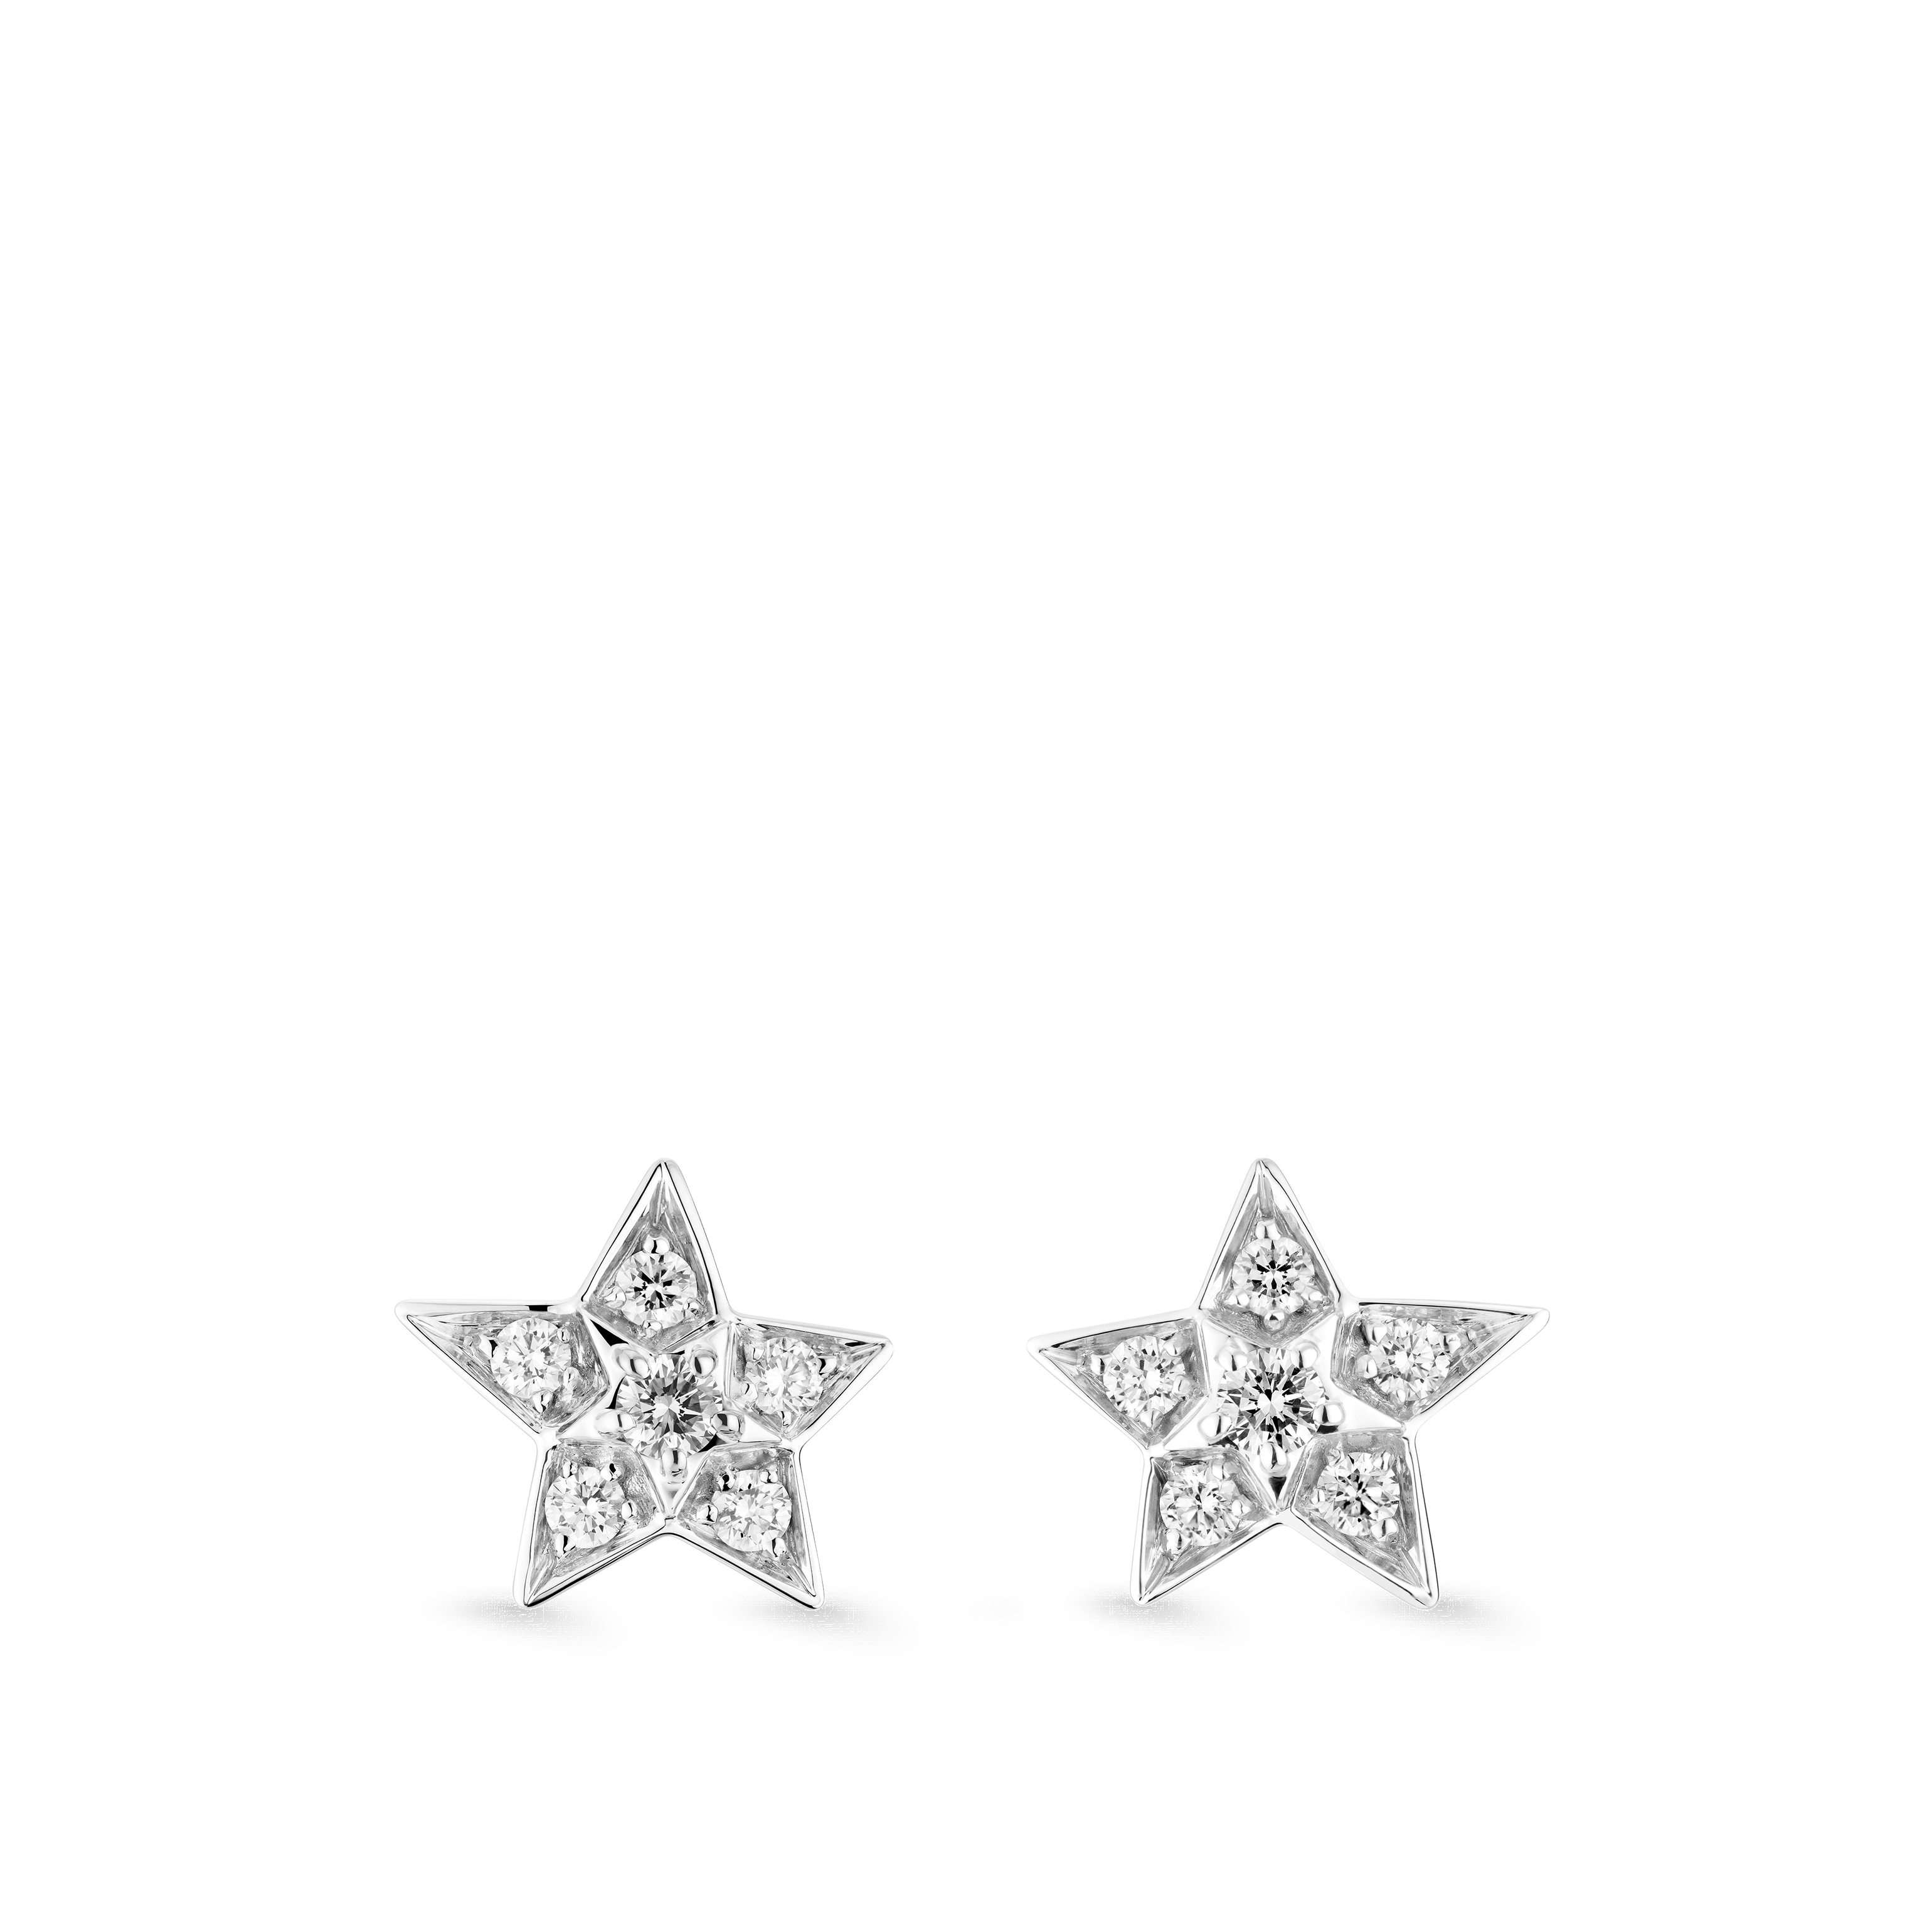 Comète Géode earrings - Small version, 18K white gold, diamonds - CHANEL - Default view - see standard sized version